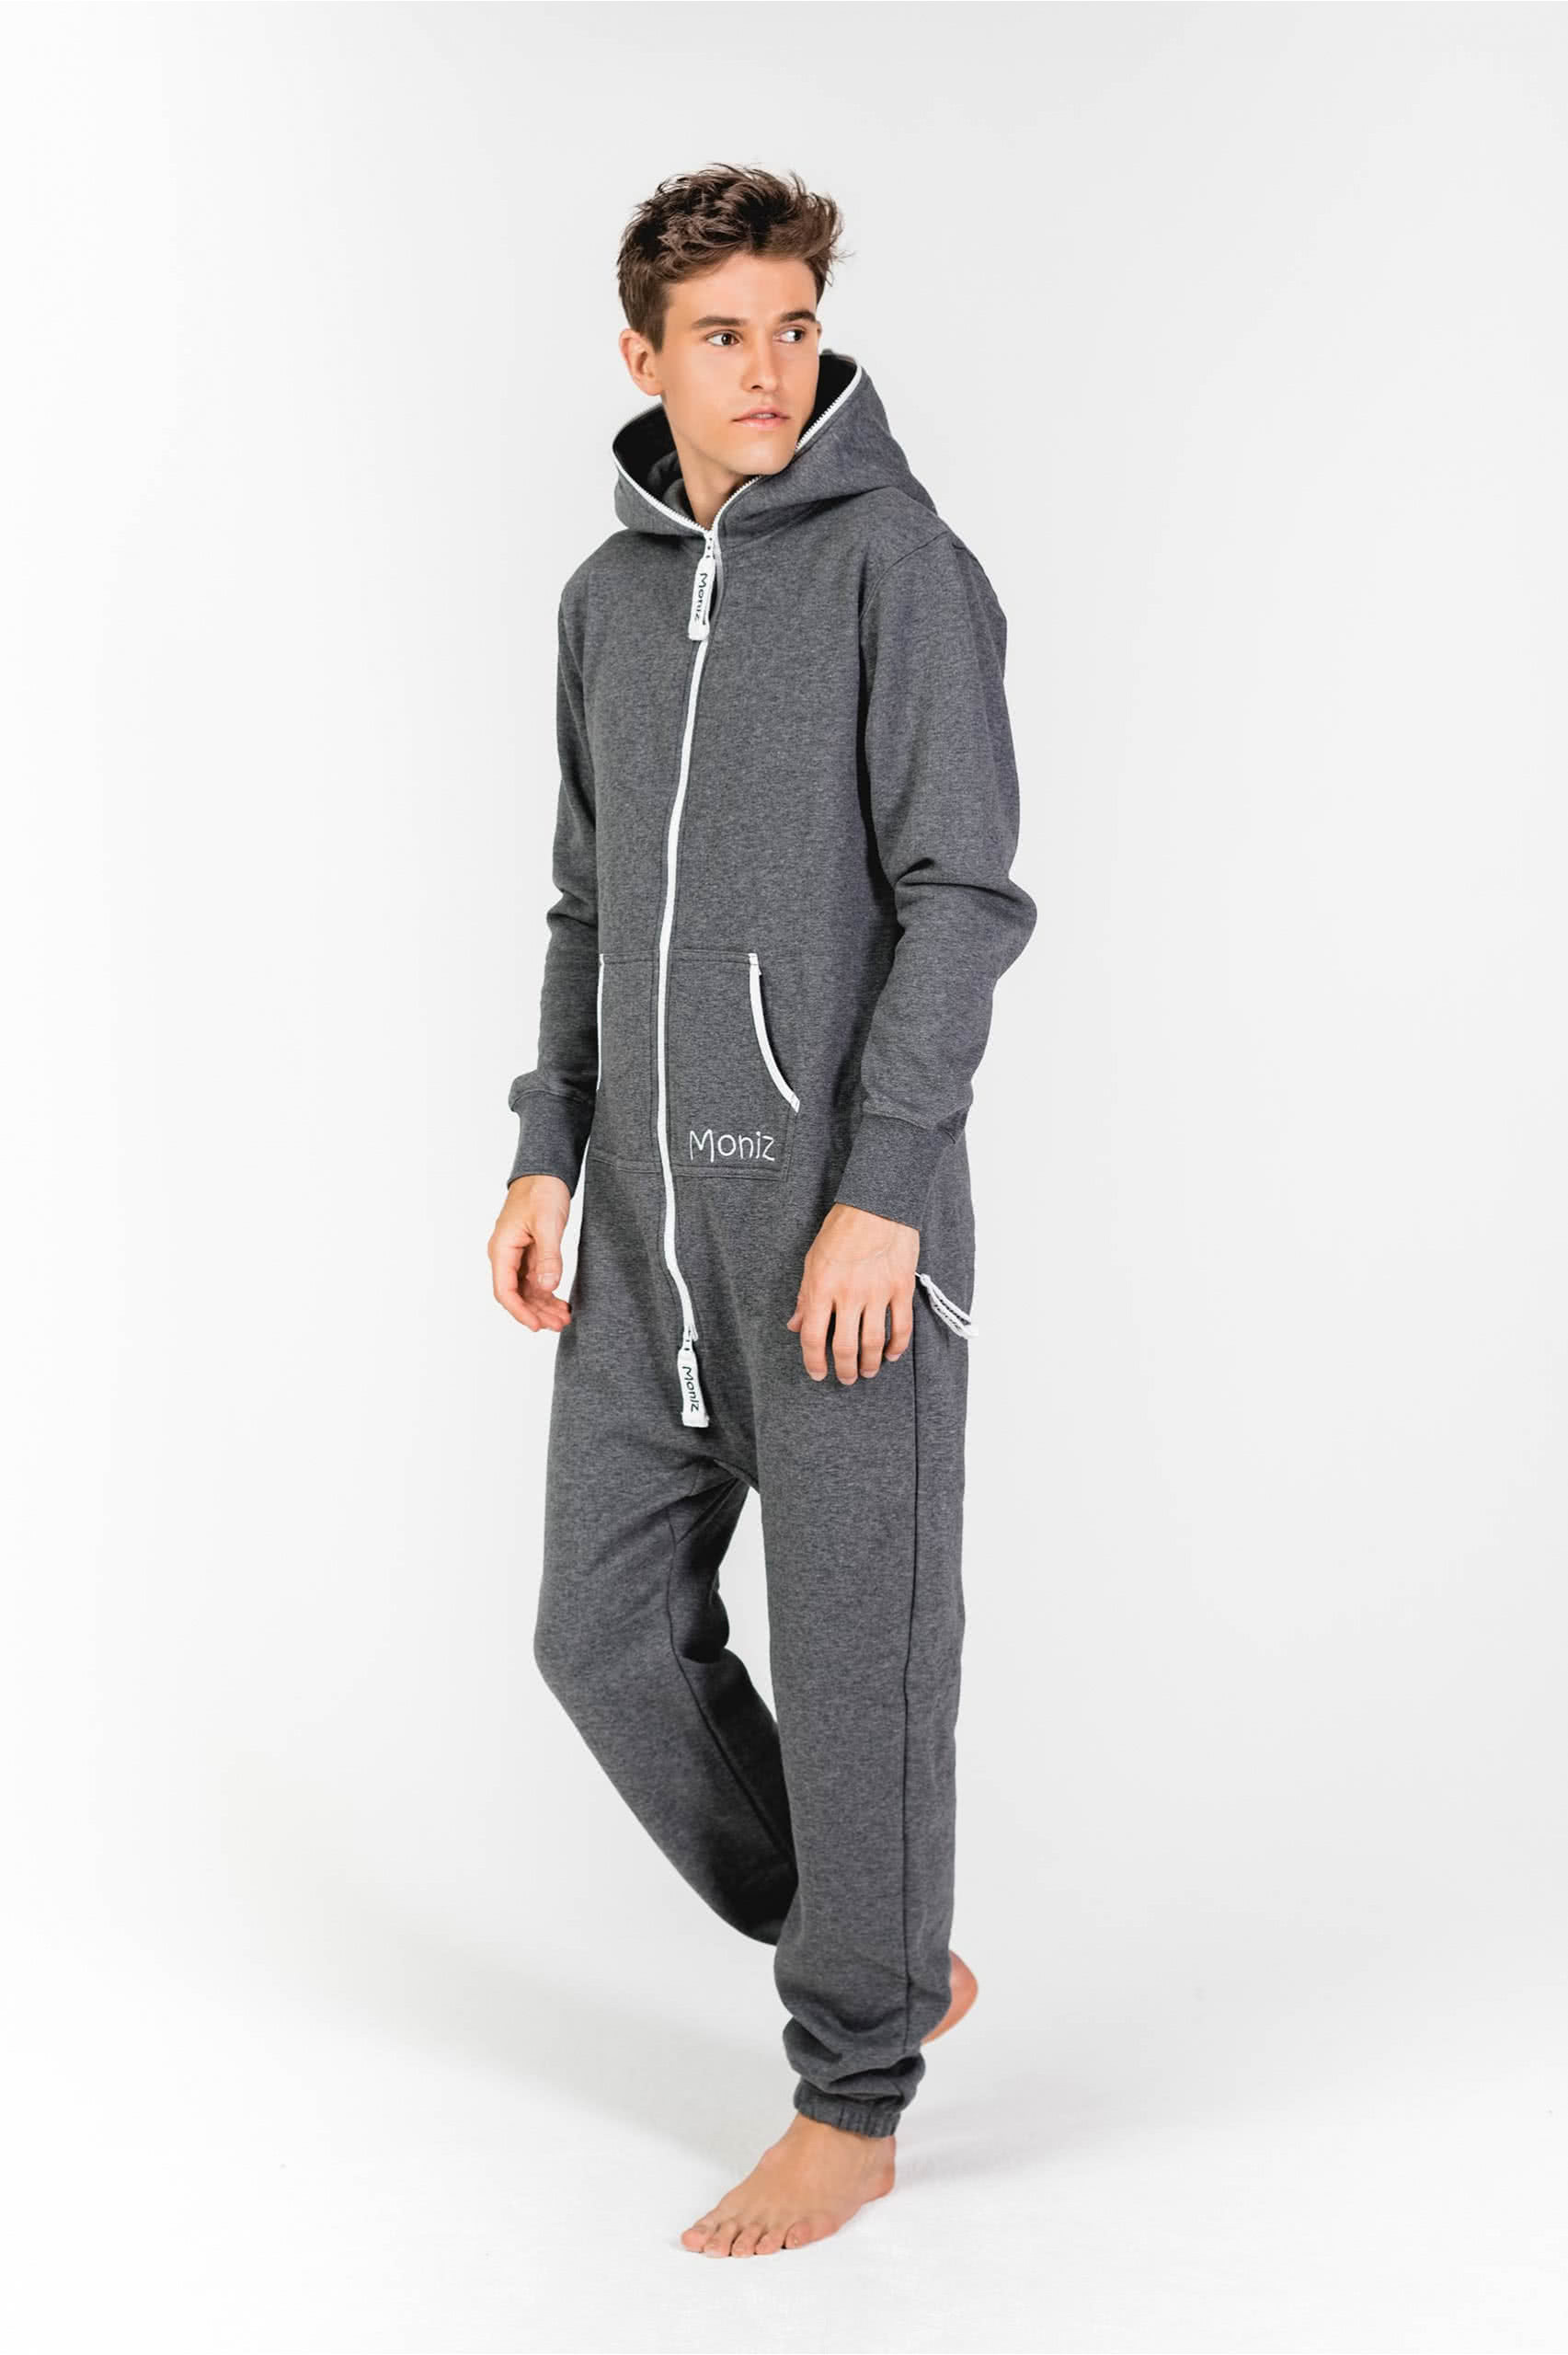 Moniz Herren Jumpsuit Dunkelgrau - Mountain Grey